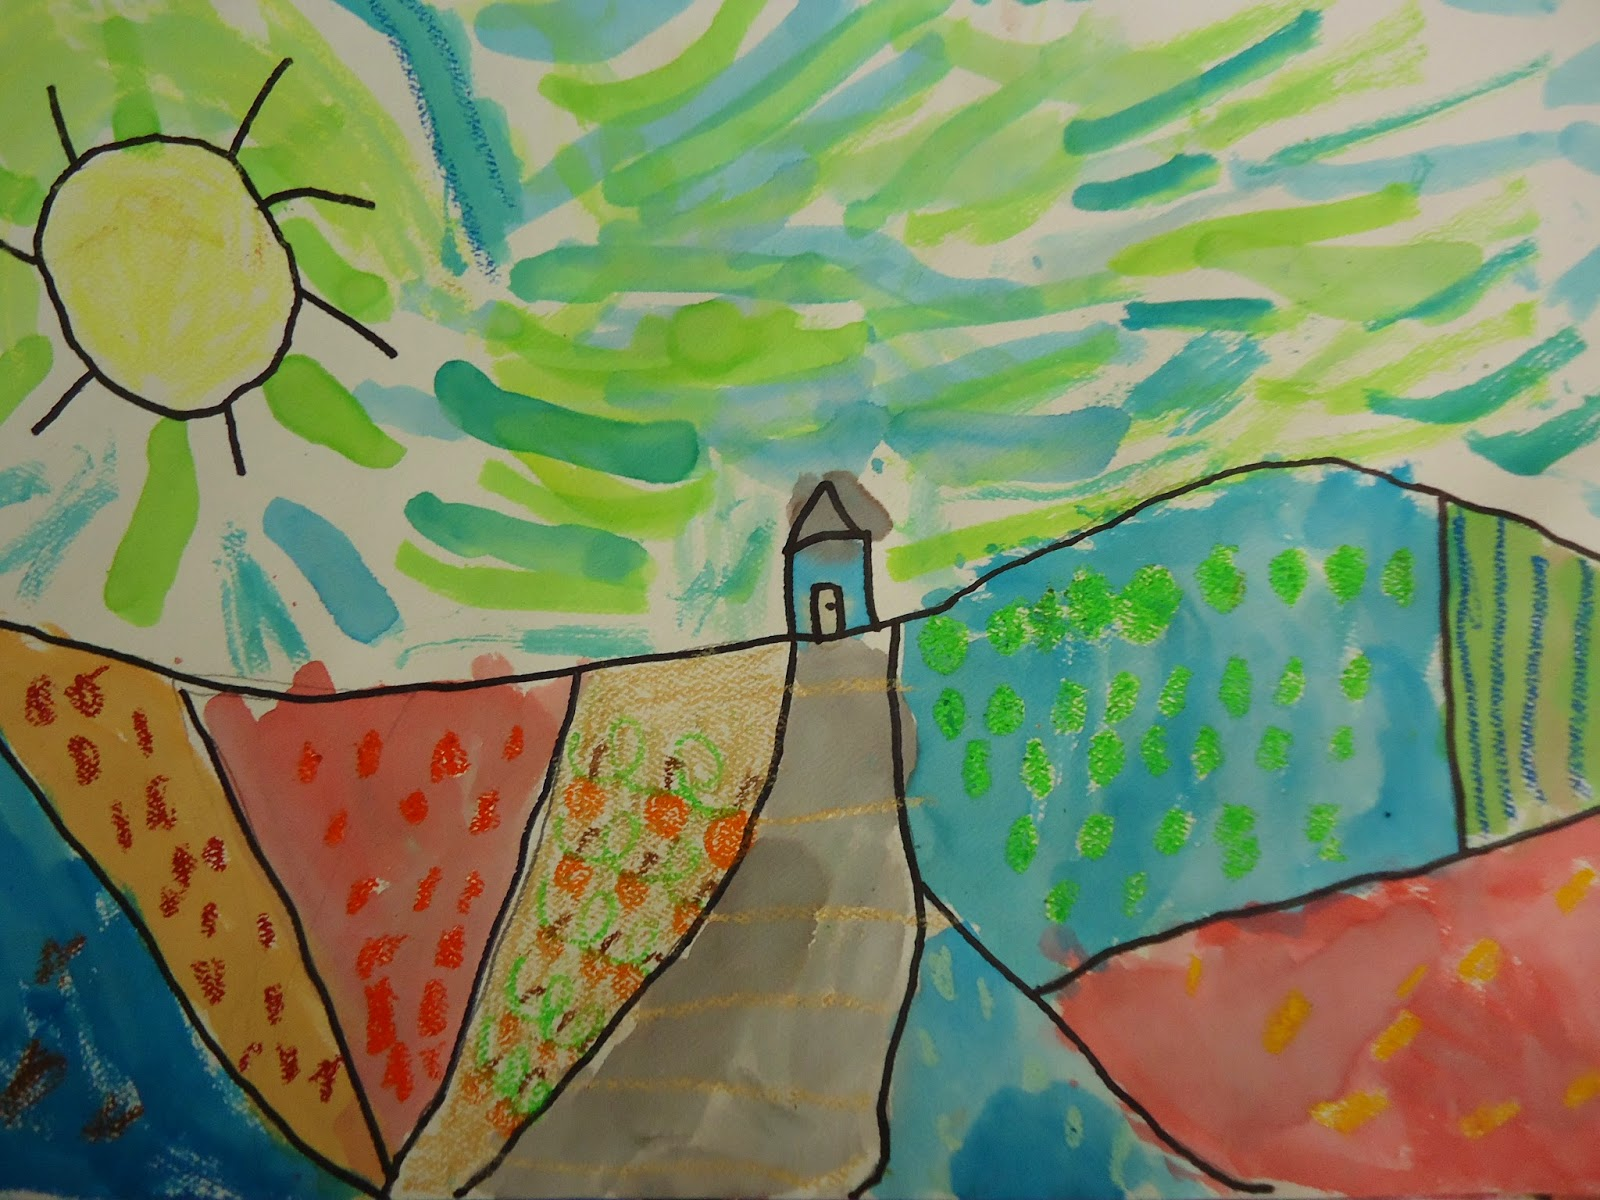 Mini Matisse: Hockney Landscapes